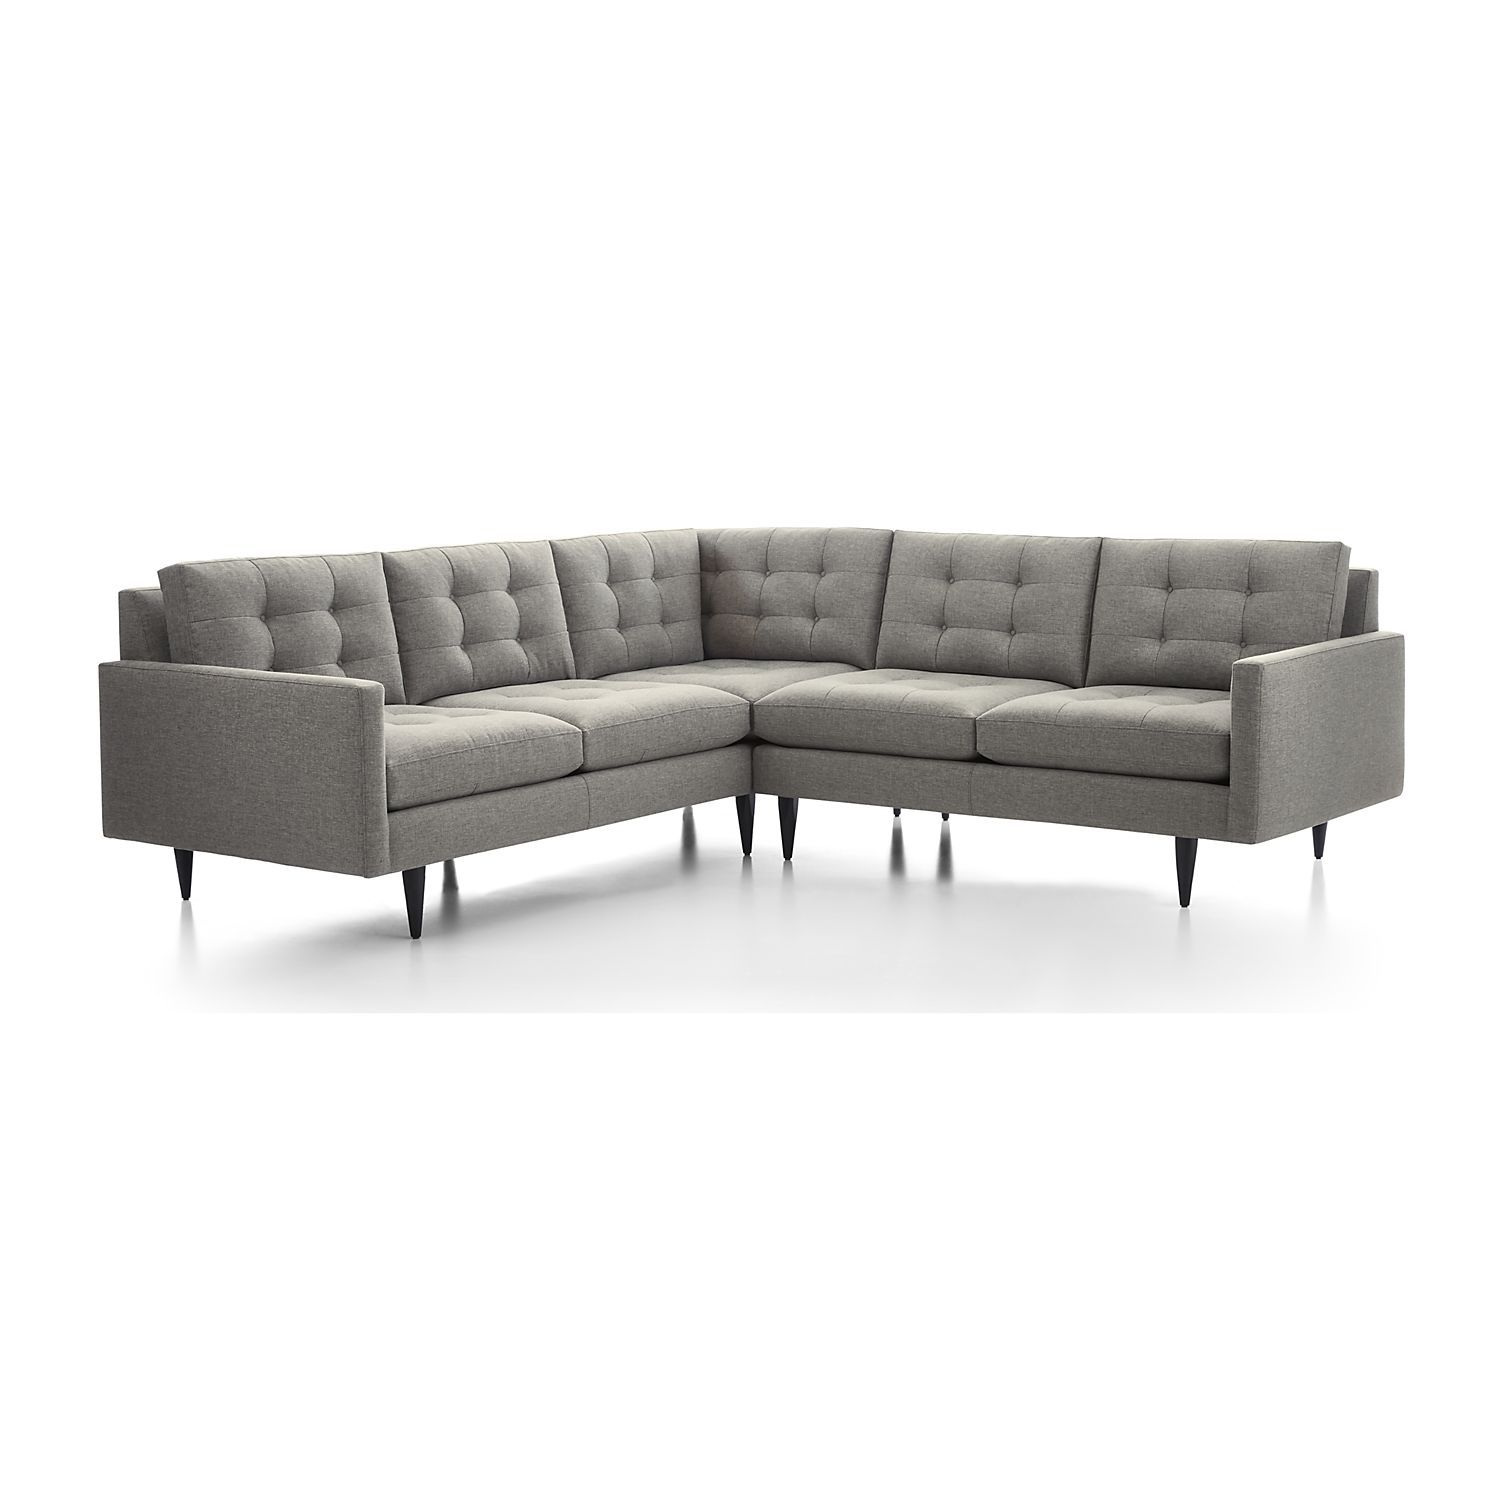 Petrie 2 Piece Corner Sectional Sofa